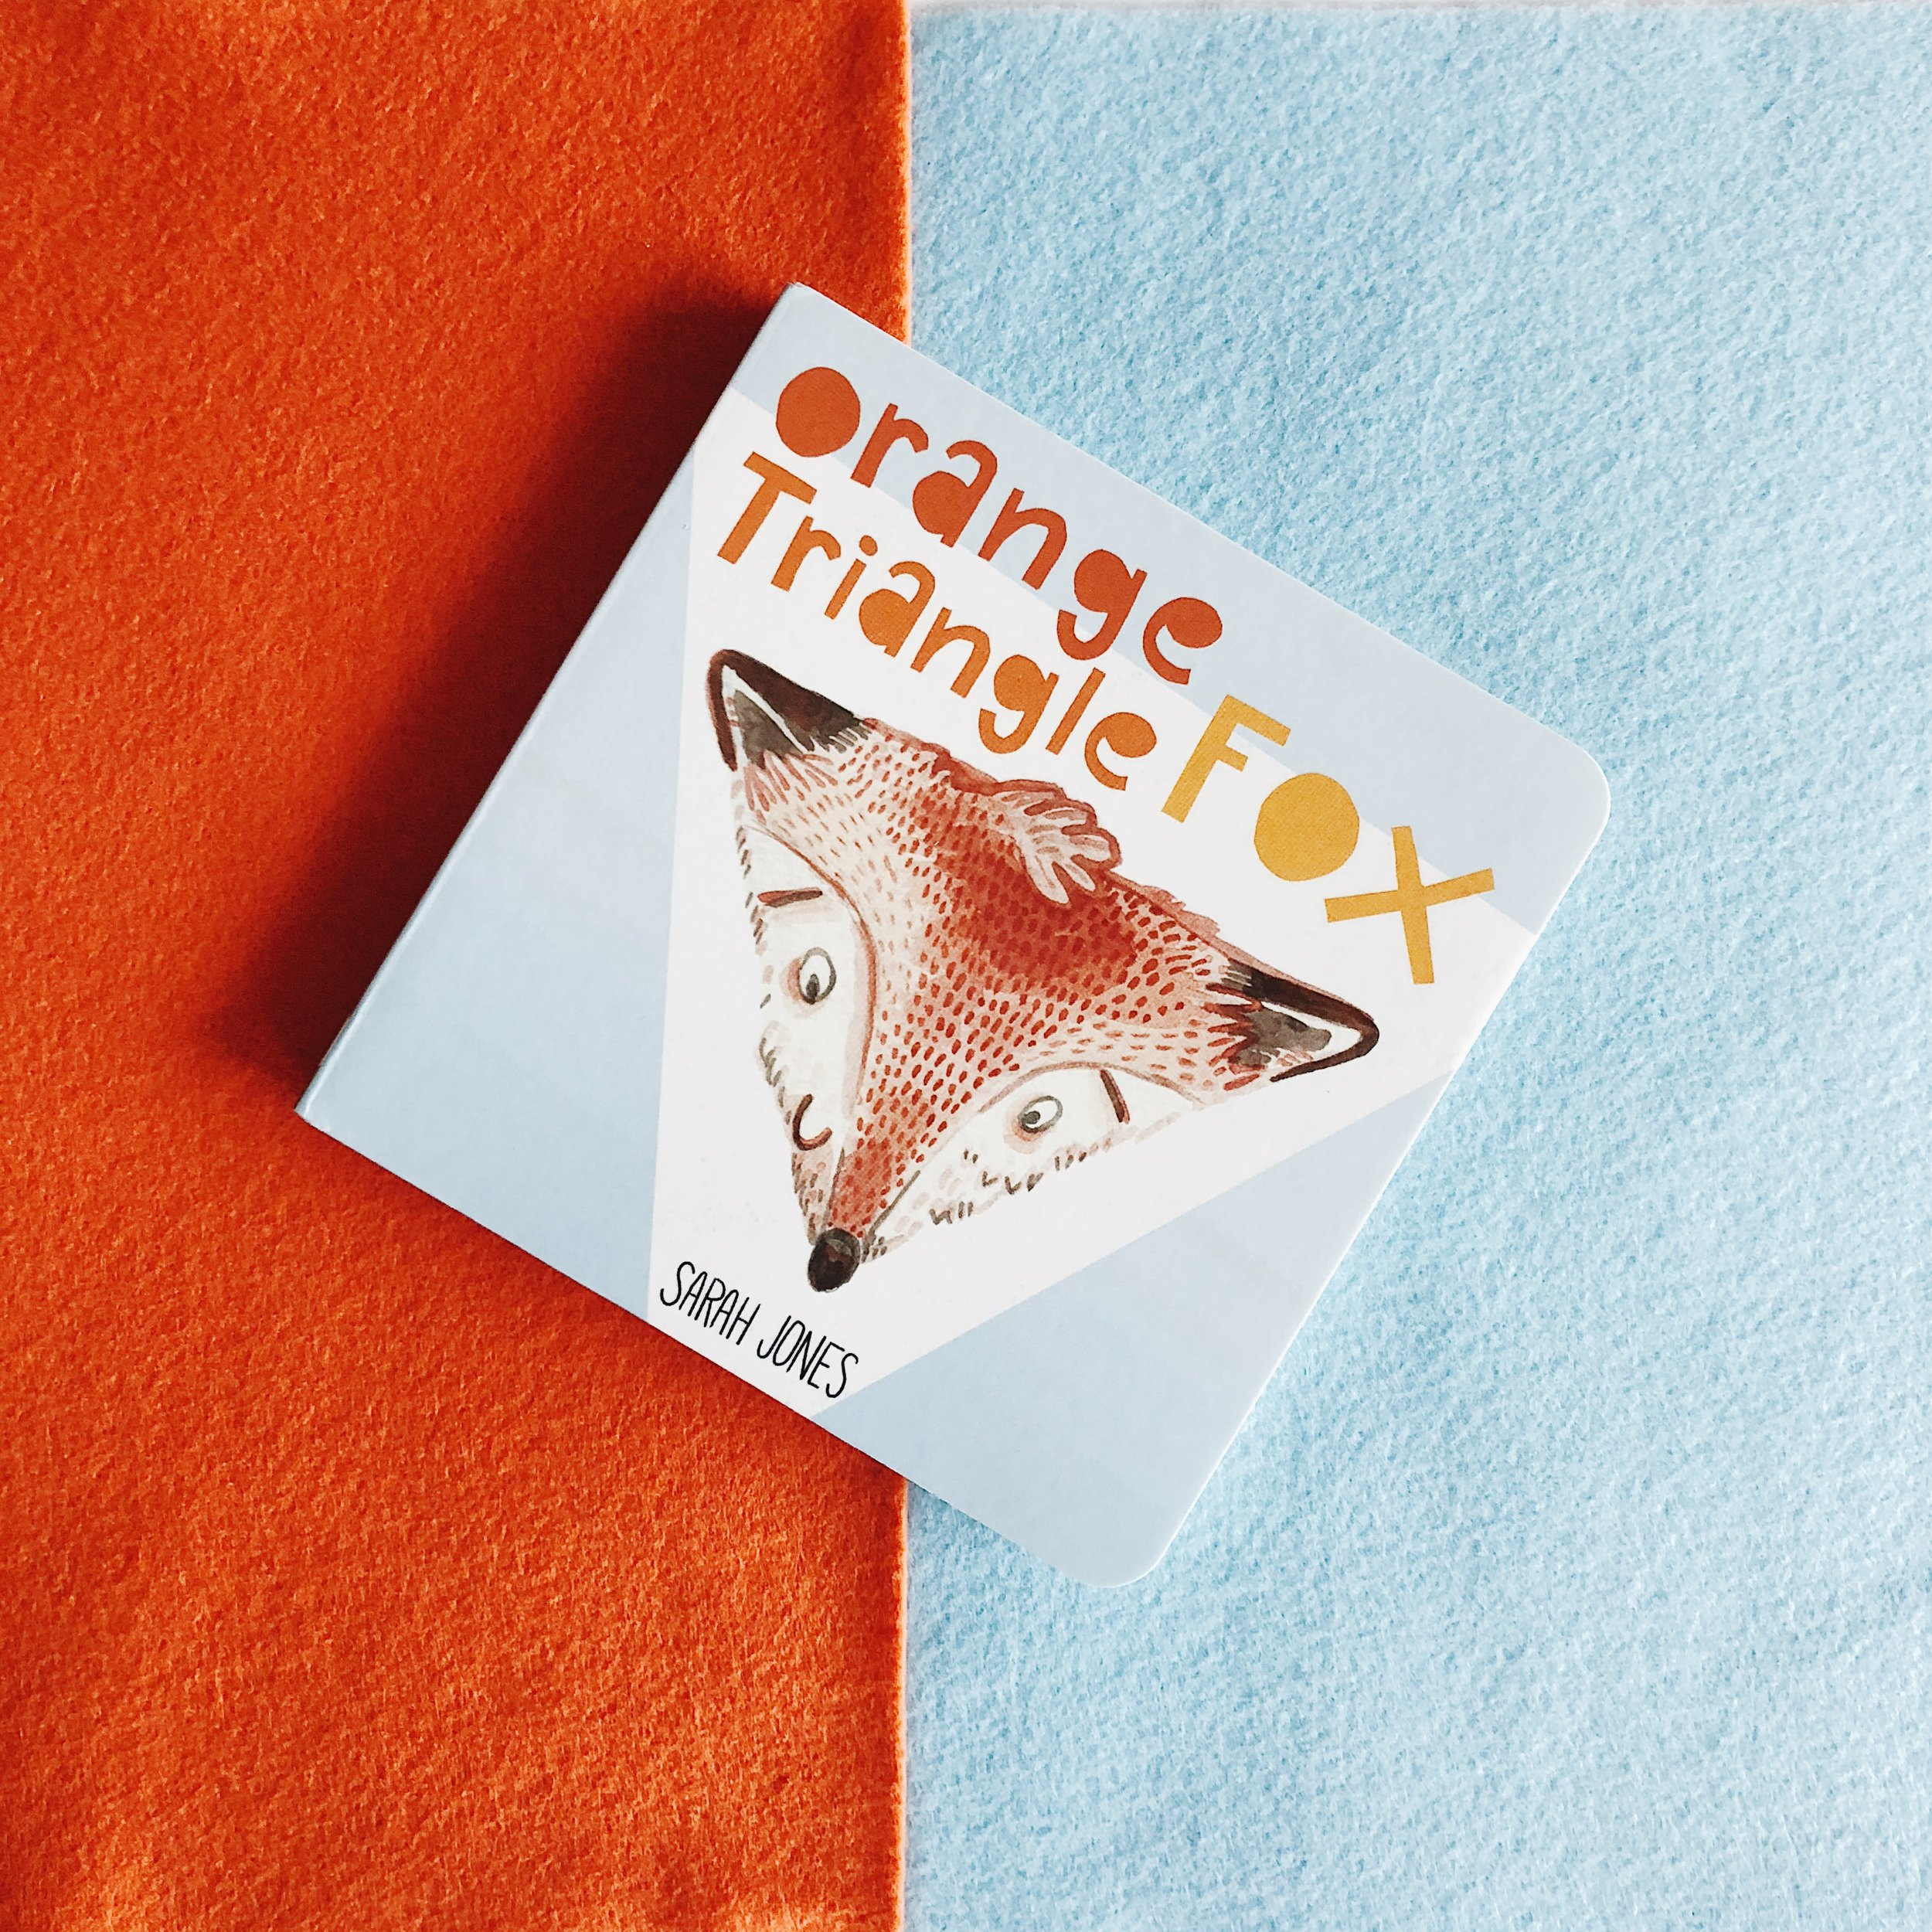 Orange Triangle Fox , written and illustrated by Sarah Jones, was the first completed book in the ROYGBaby series!